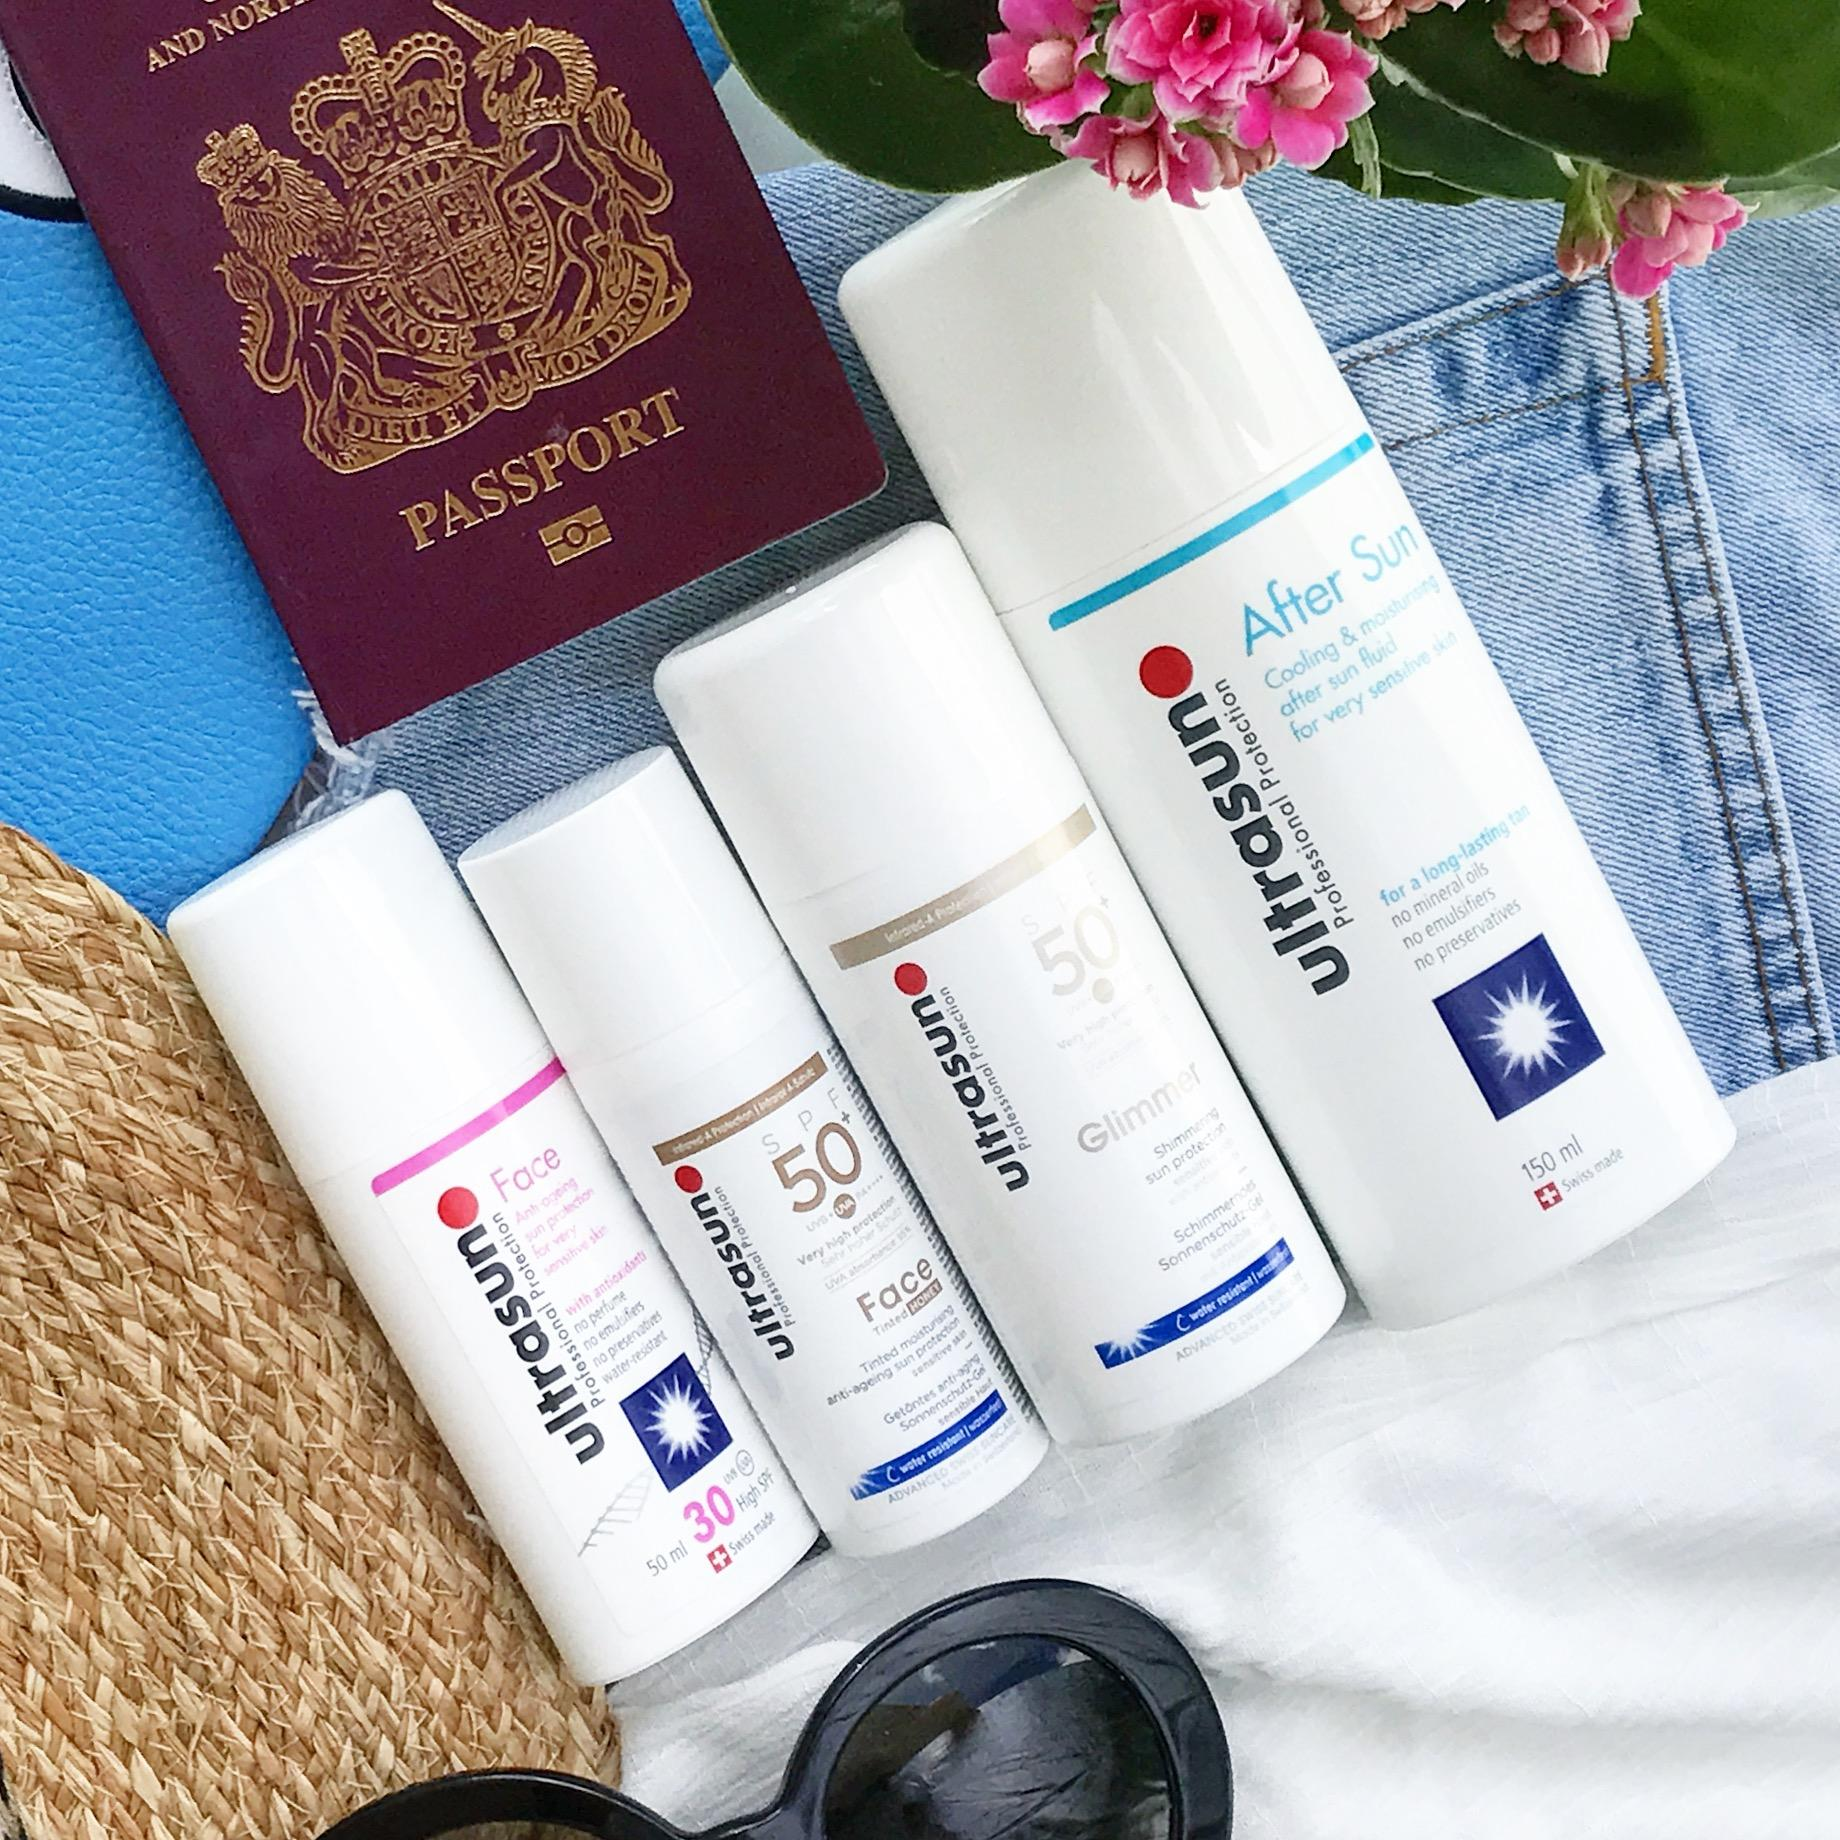 Ultrasun and Why It's So Important To Use Sunscreen